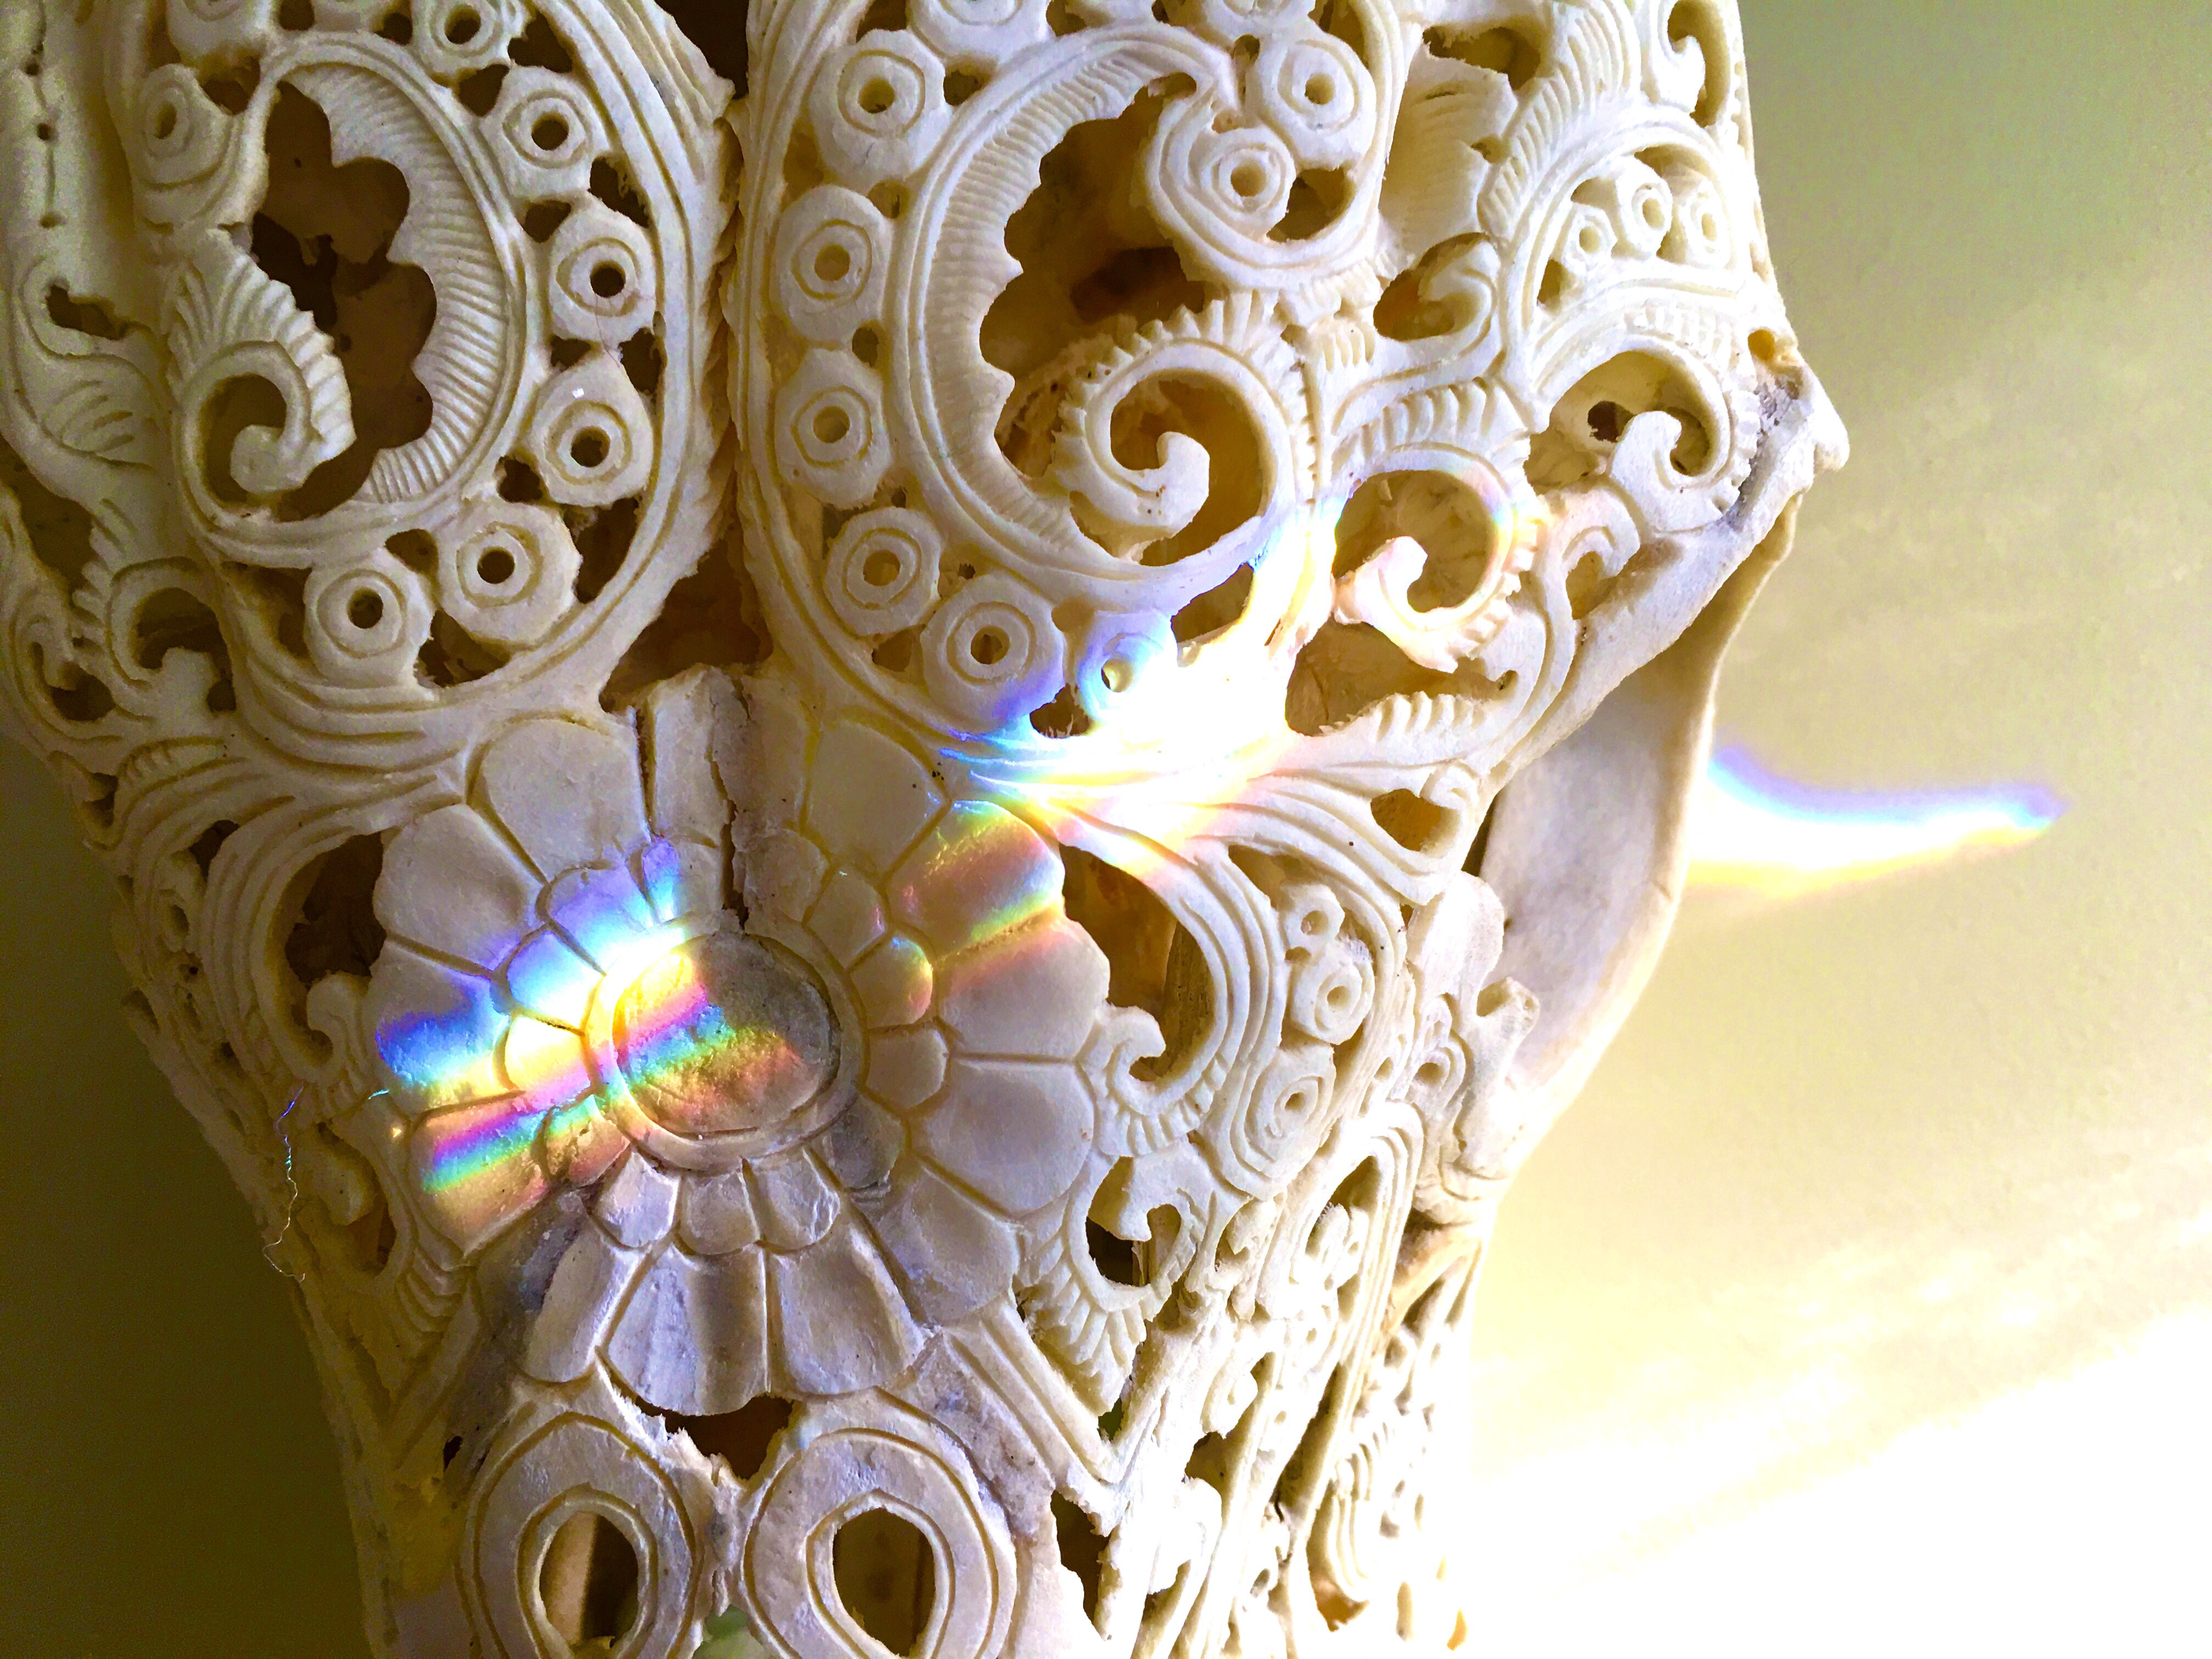 ornate filigreed carving of mid portion of a cow's skull crossed diagonally by a double rainbow